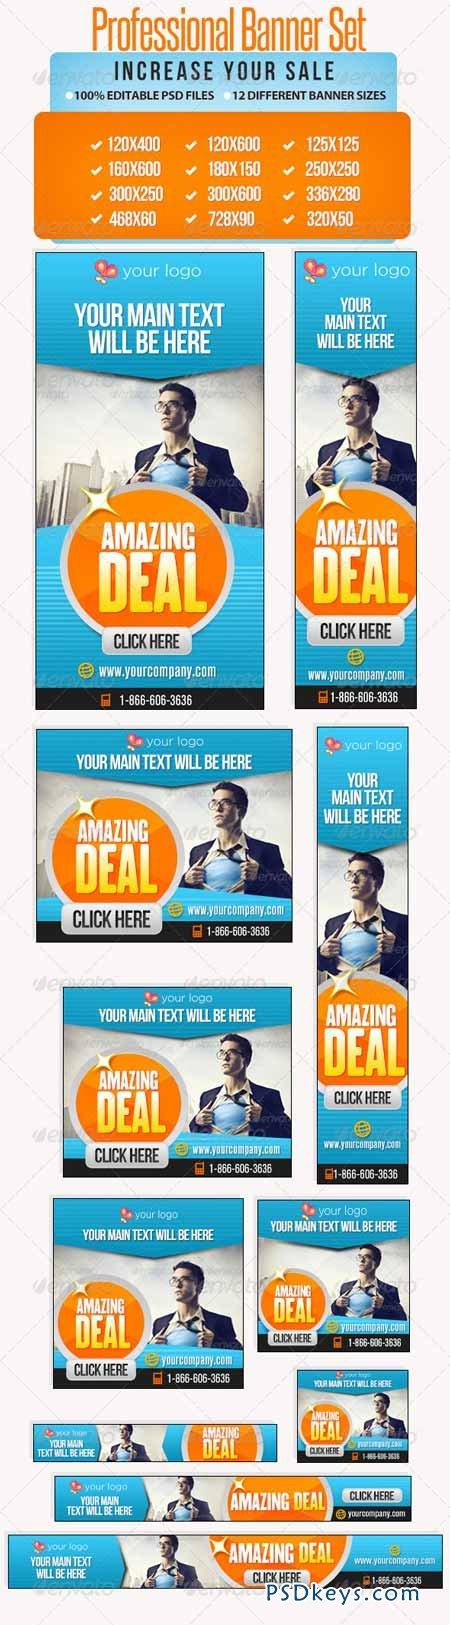 Professional Banner Set with Animation - 12 sizes 5011663